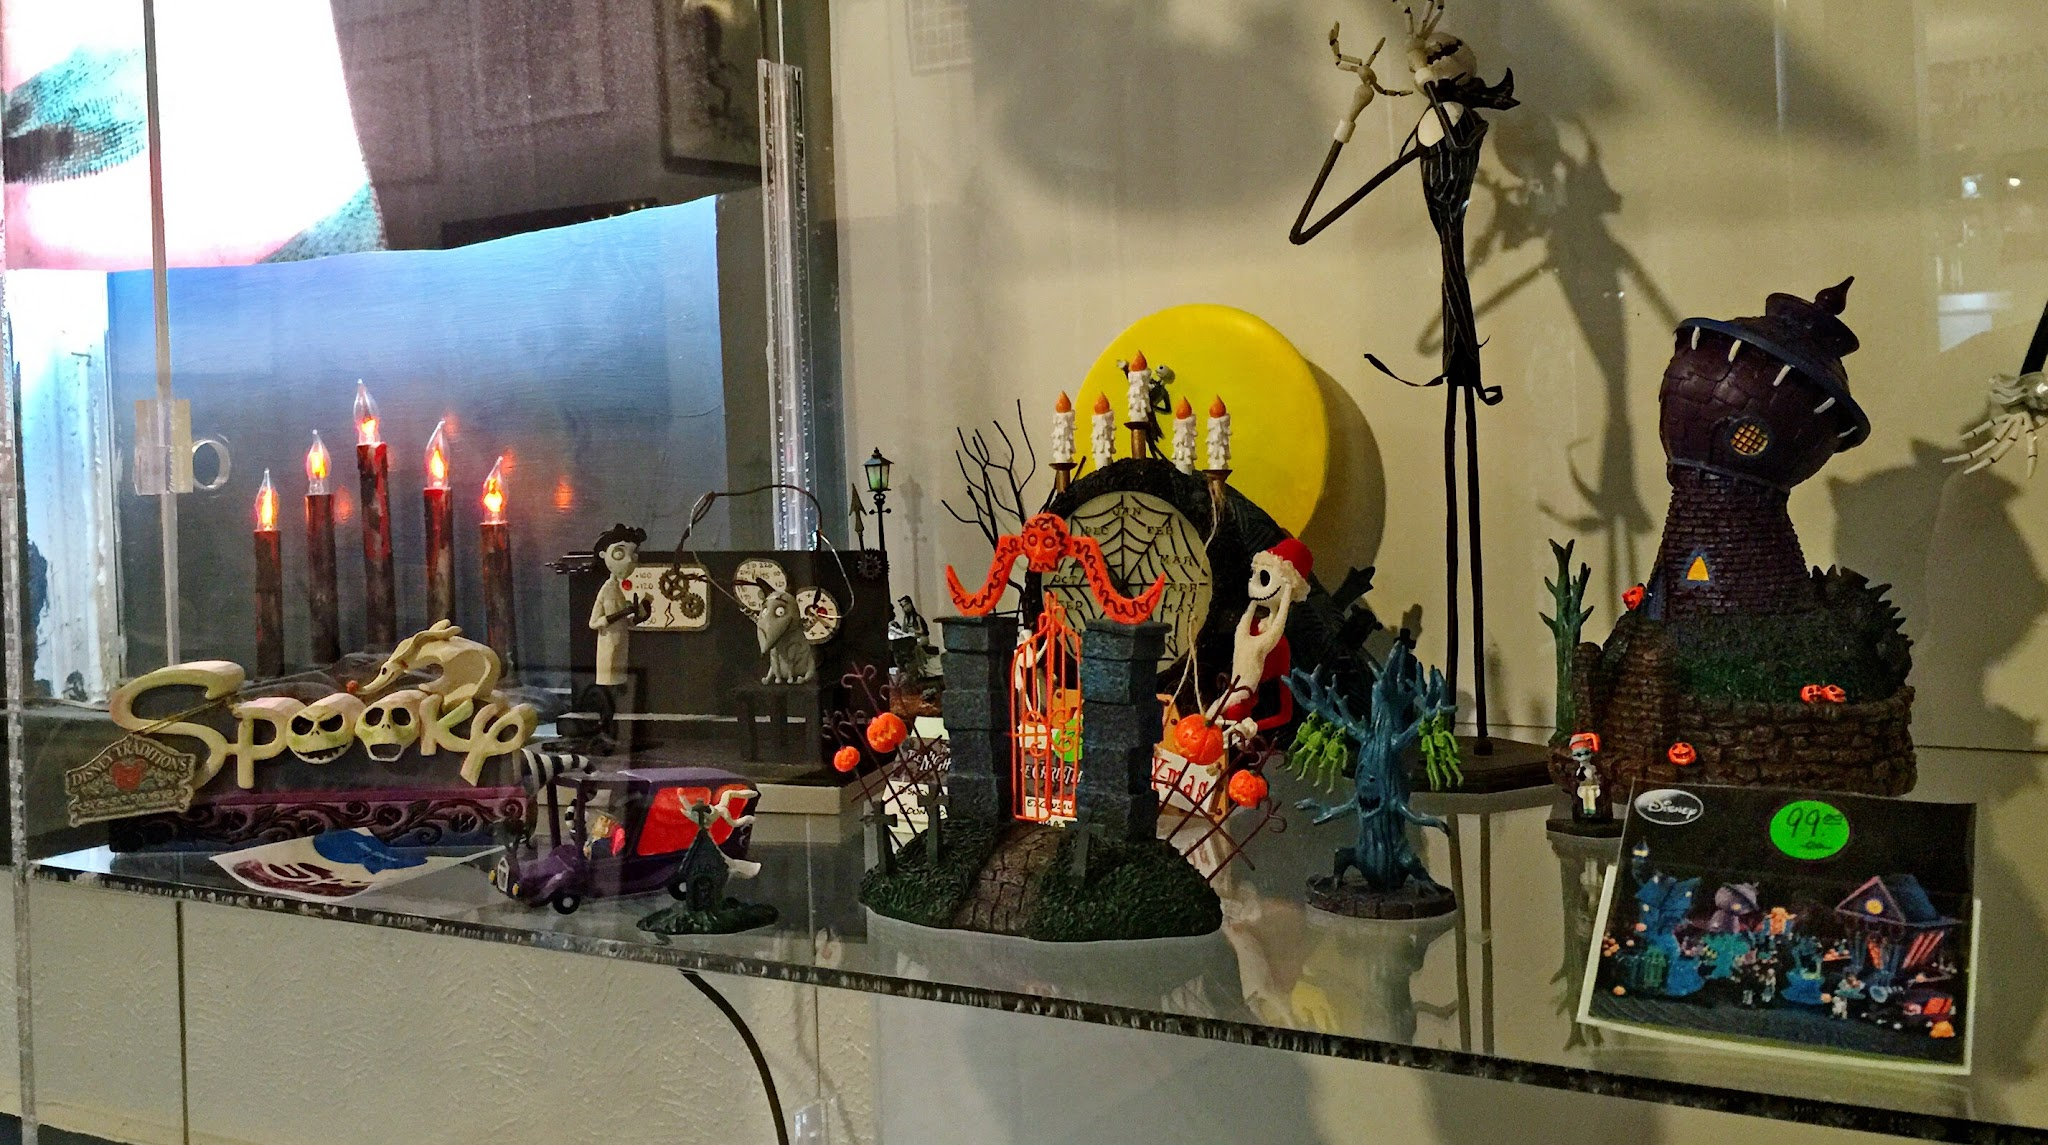 Scenes and characters from A Nightmare Before Christmas were of course a huge part of the… exhibit?